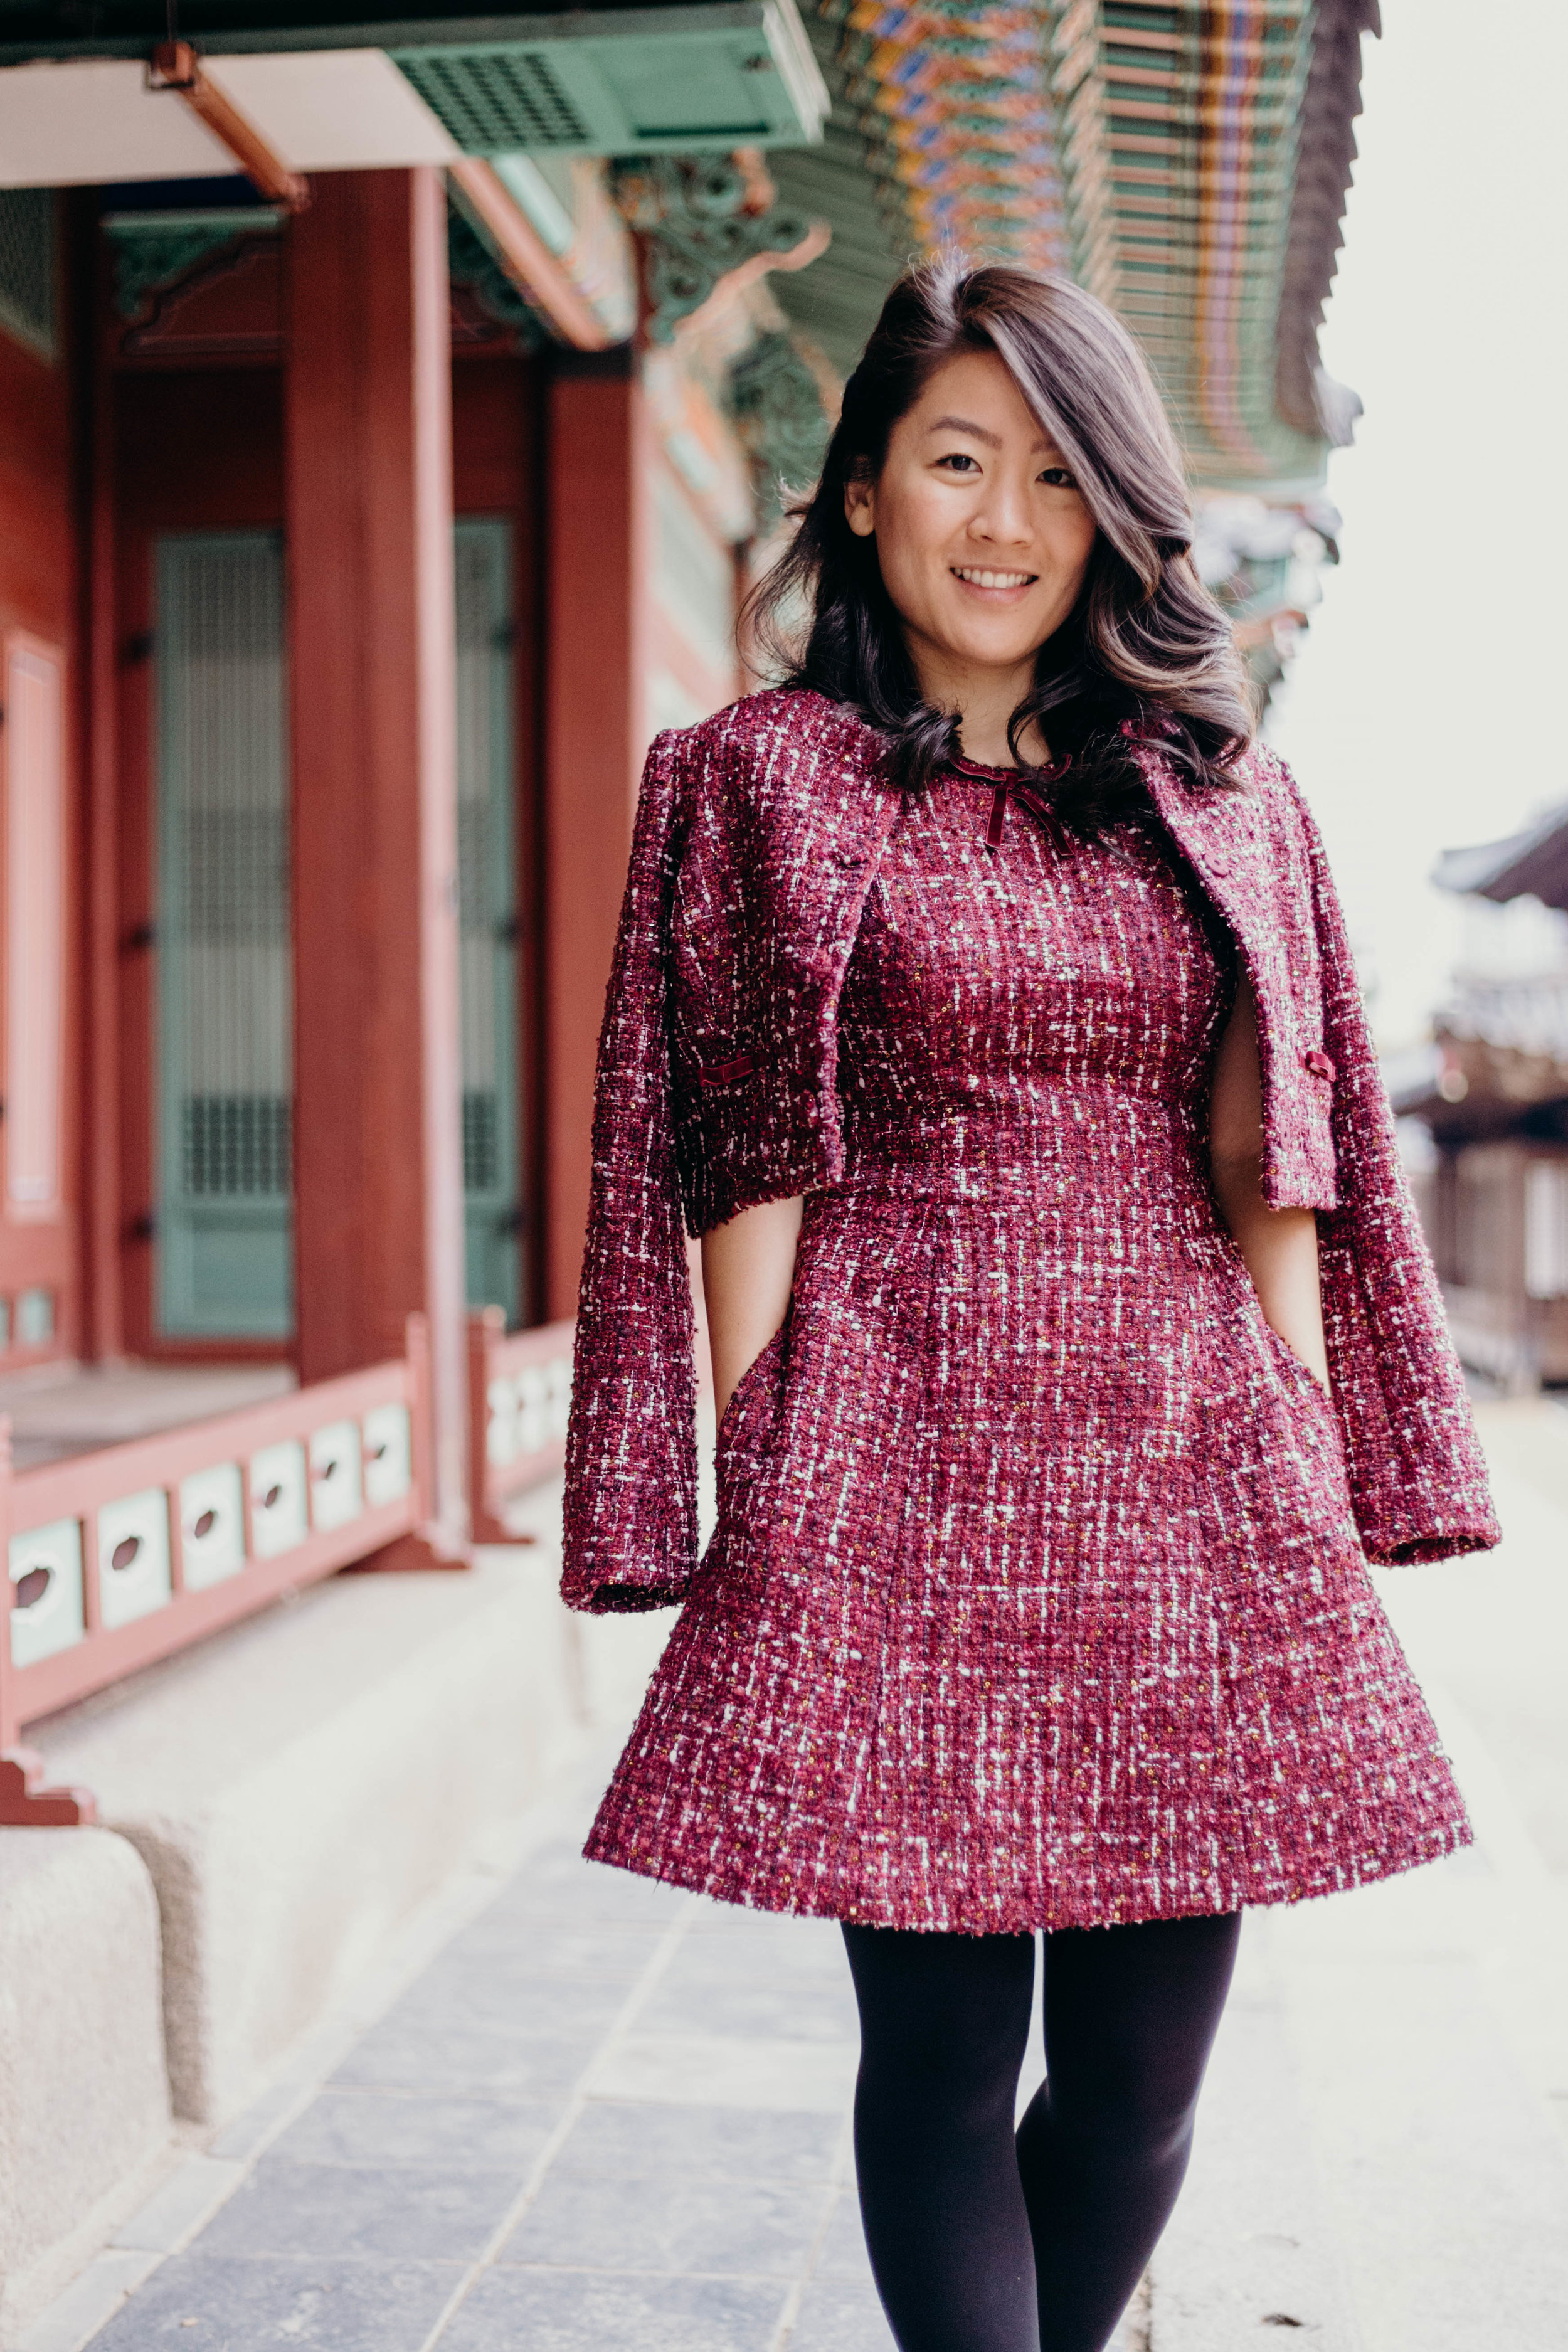 The Dress I Wore Most Last Semester and an Exciting Sale | On the Street Where We Live ( aretherelilactrees.com )  Gal Meets Glam Collection, Nell jacket, Nell dress, Deoksugung Palace, Seoul, South Korea